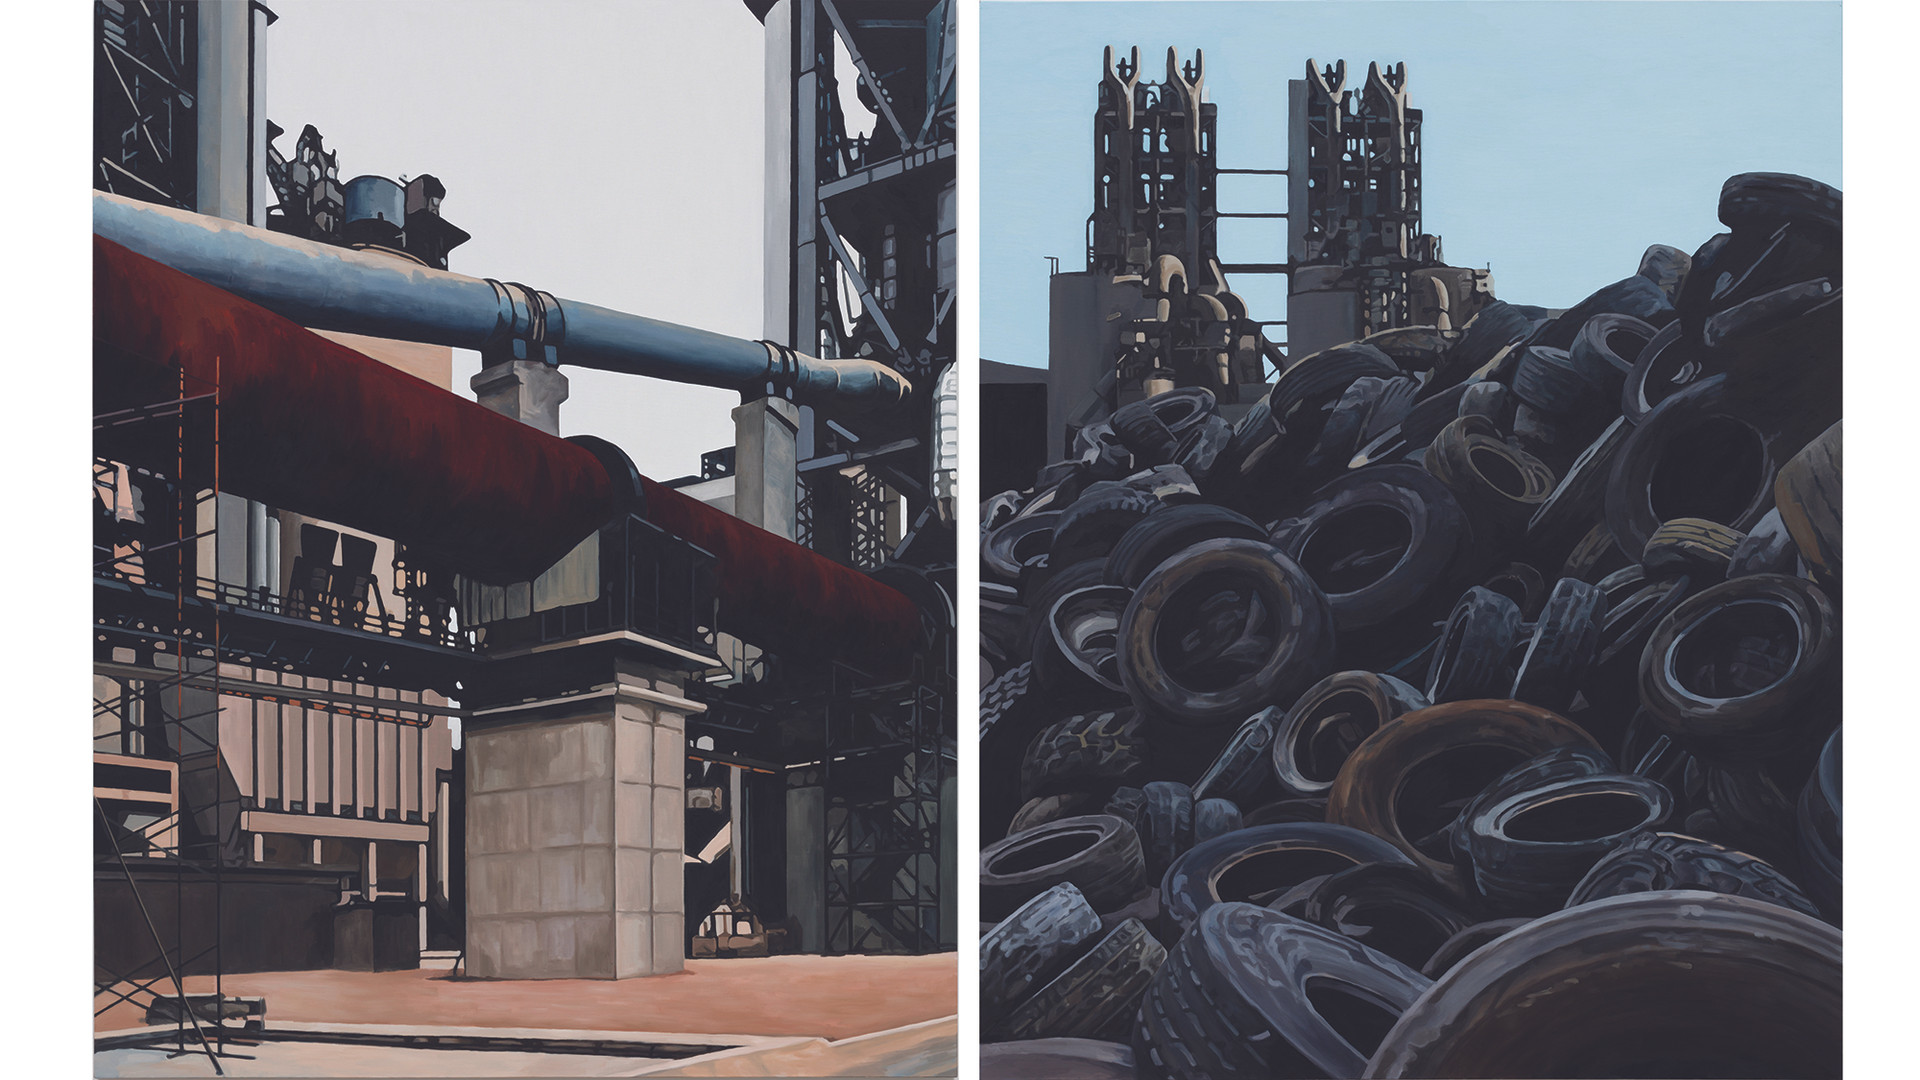 Waste Tire and Kiln 폐타이어와 소성로 (Diptych), 2016, oil on canvas, 227.3x181.8cm each